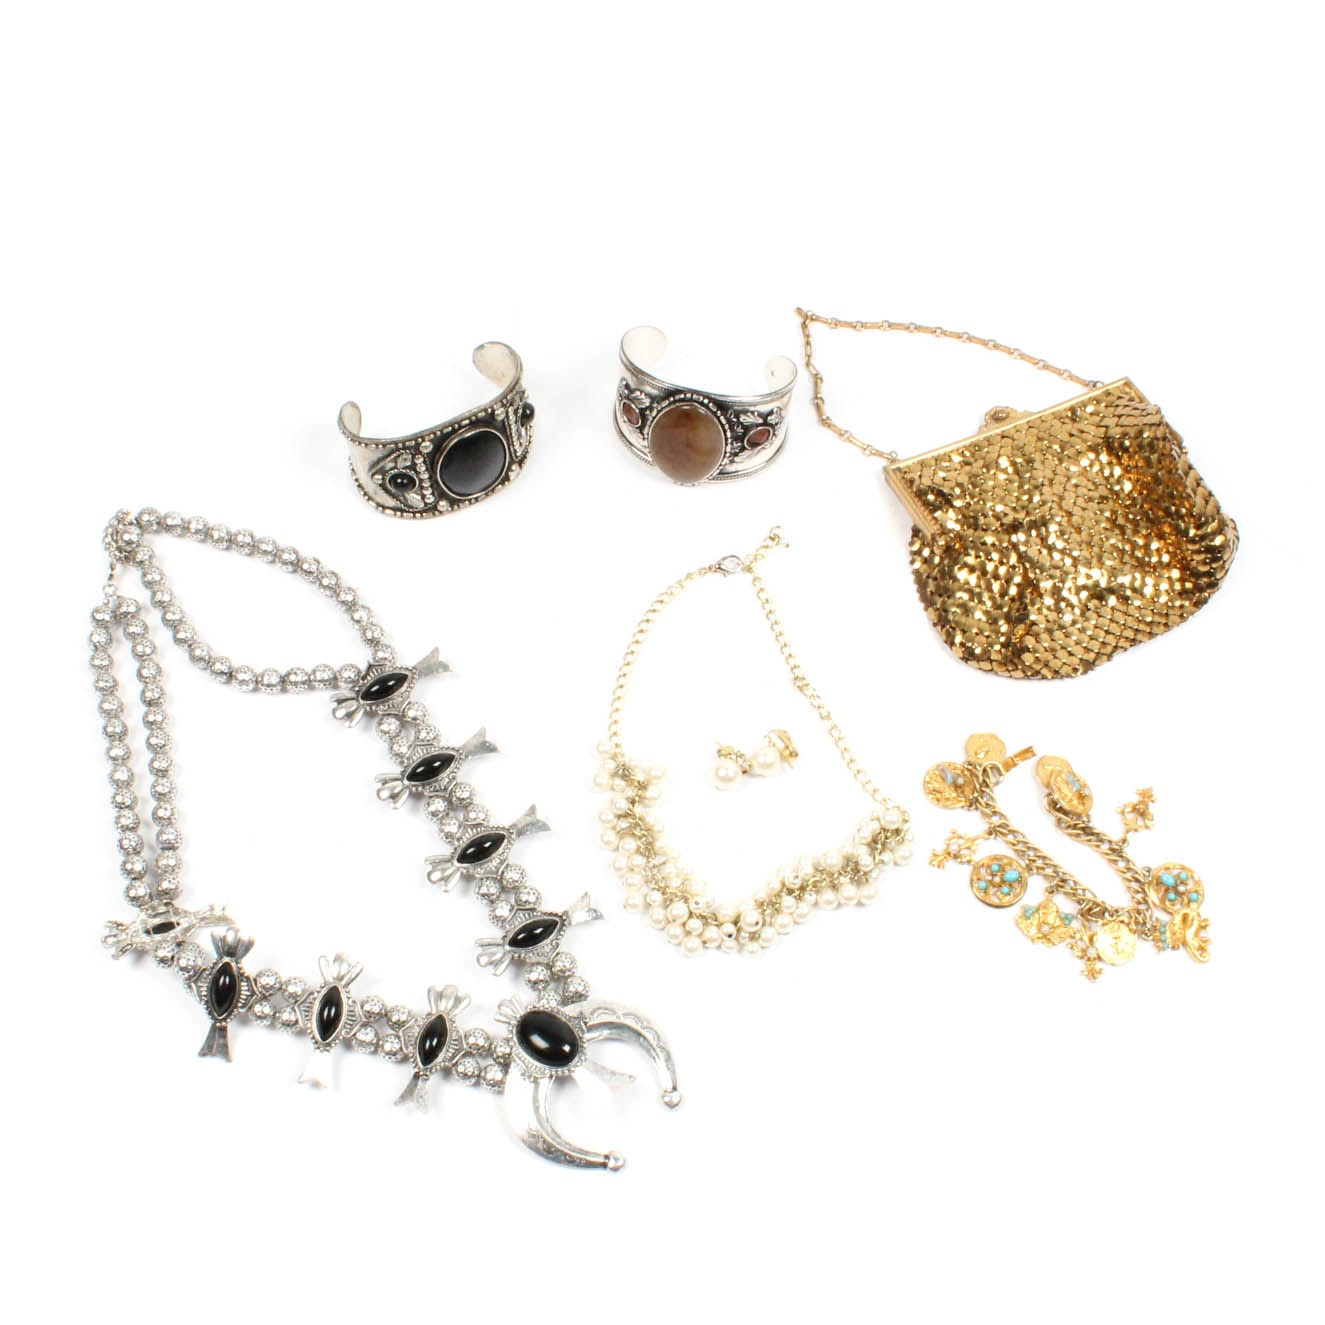 Costume Jewelry and Clutch